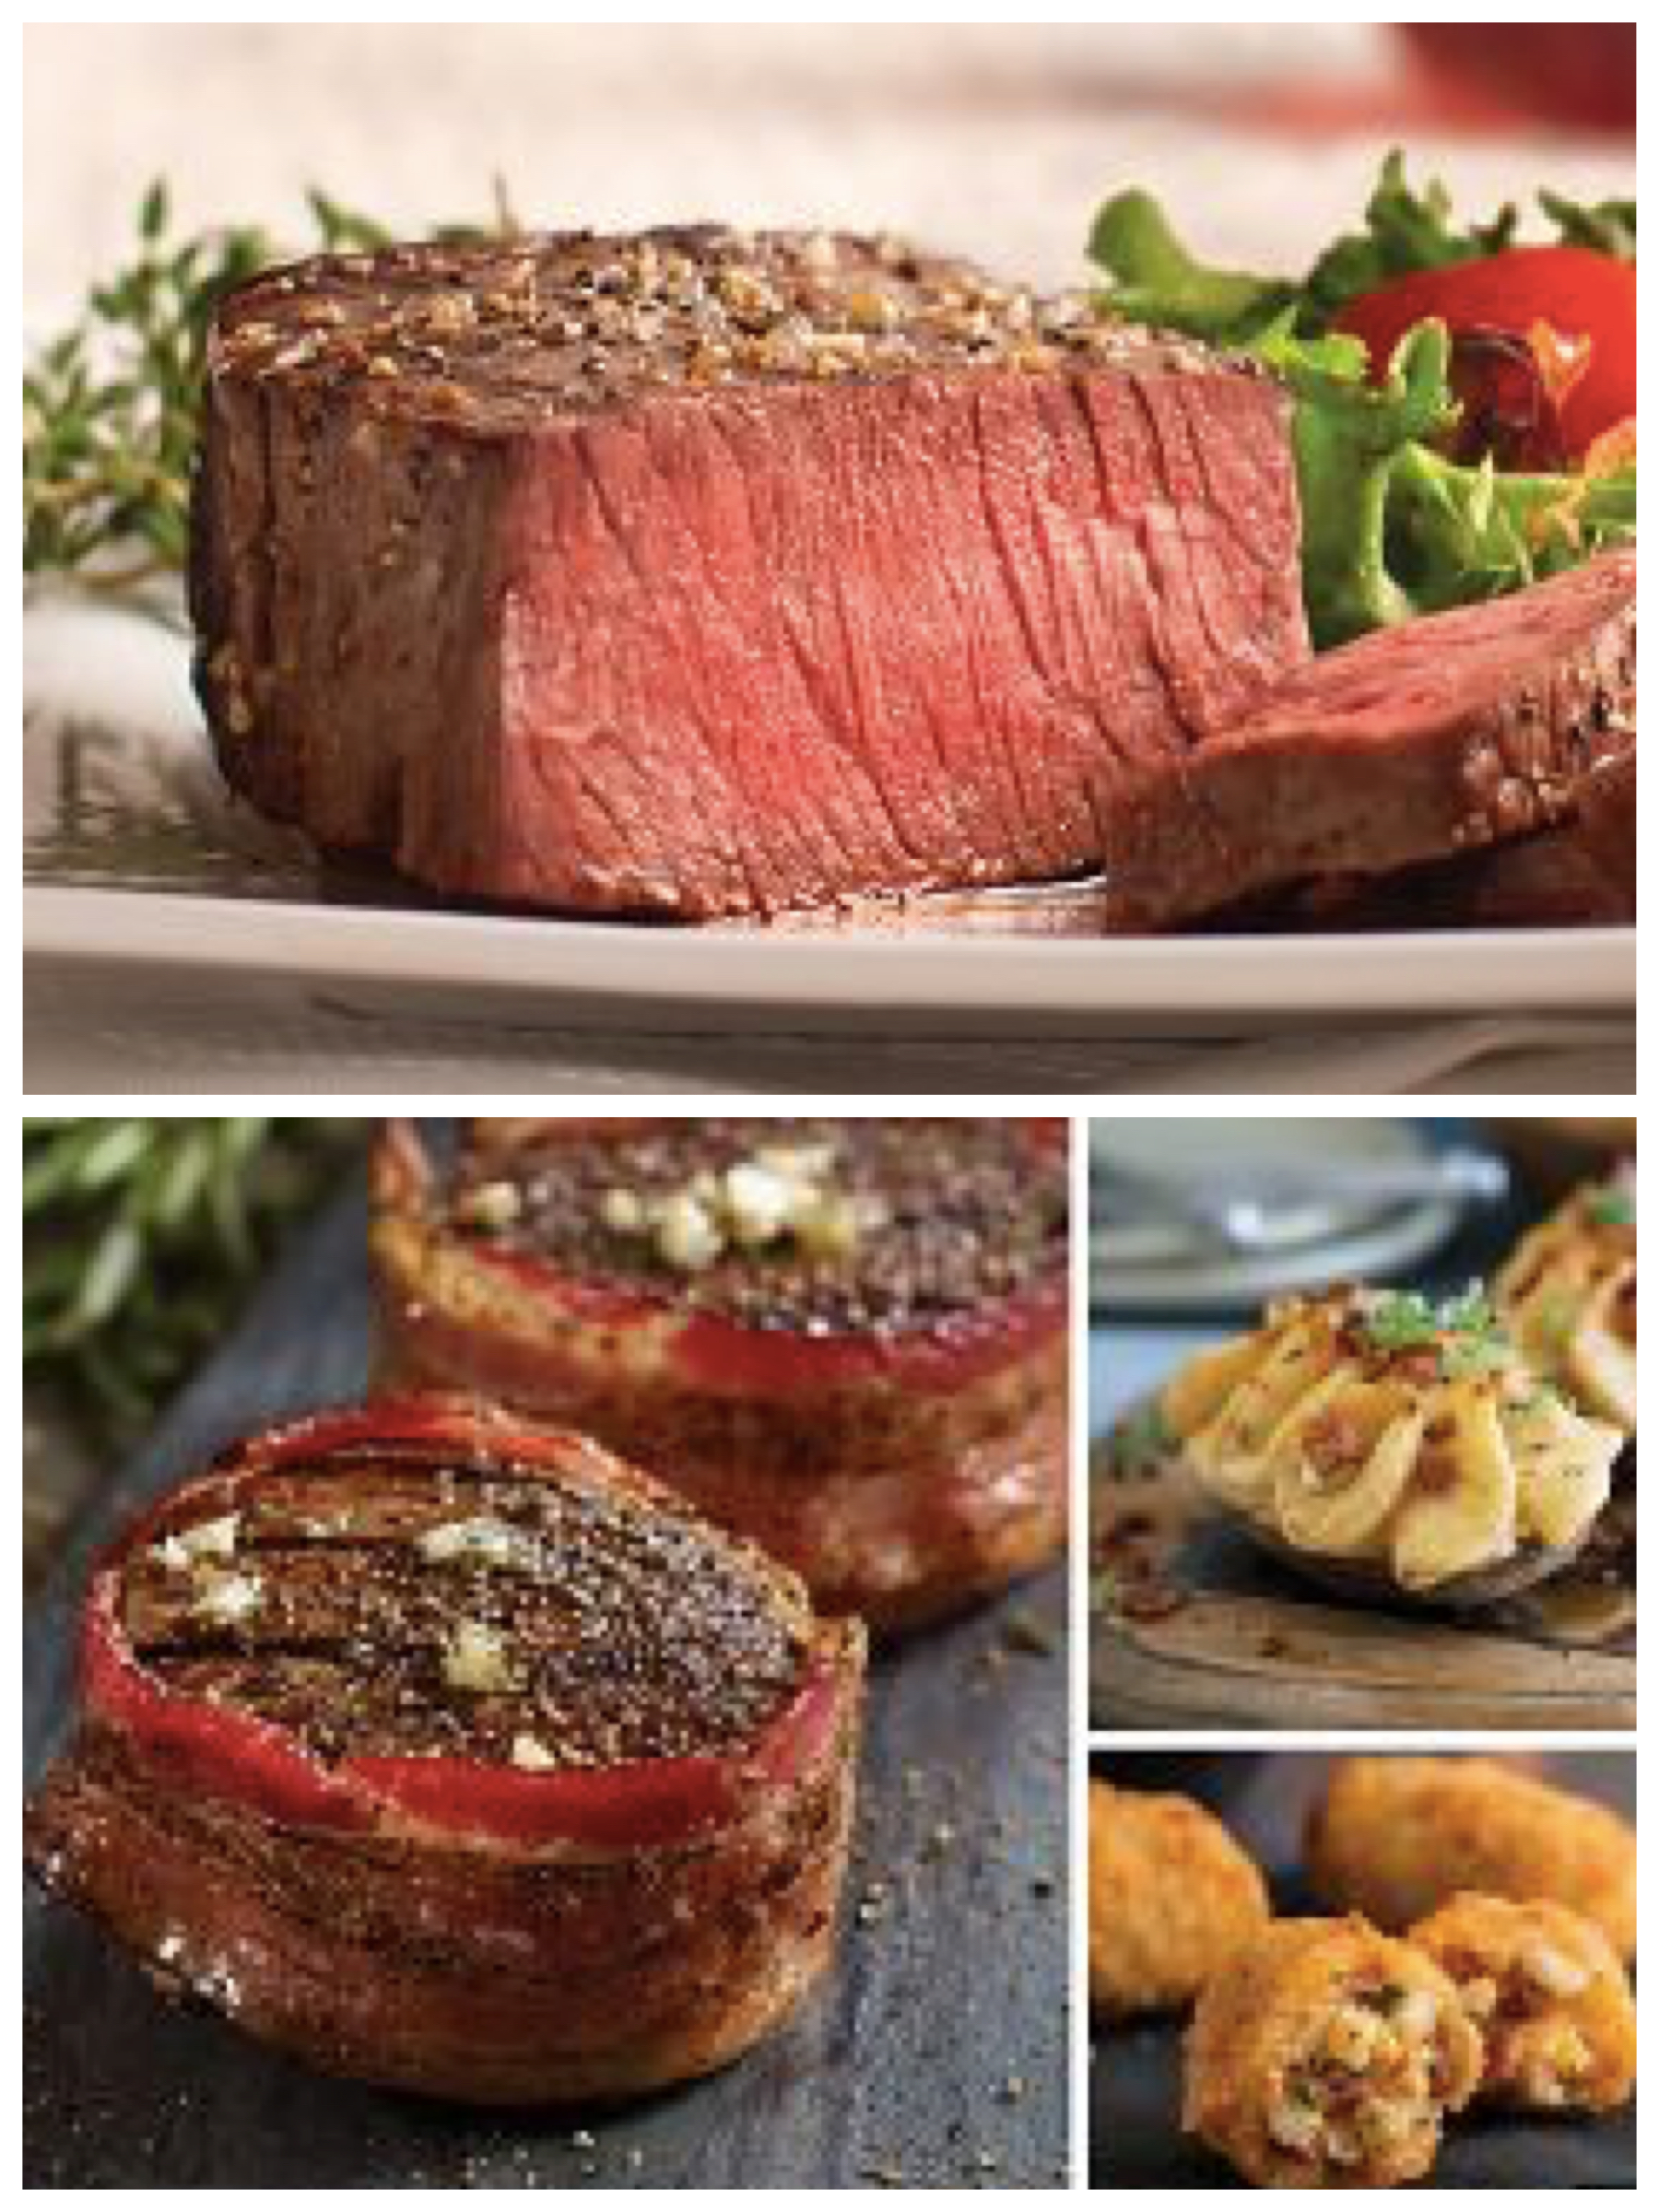 Omaha Steaks Entertaining Meals and Gifts